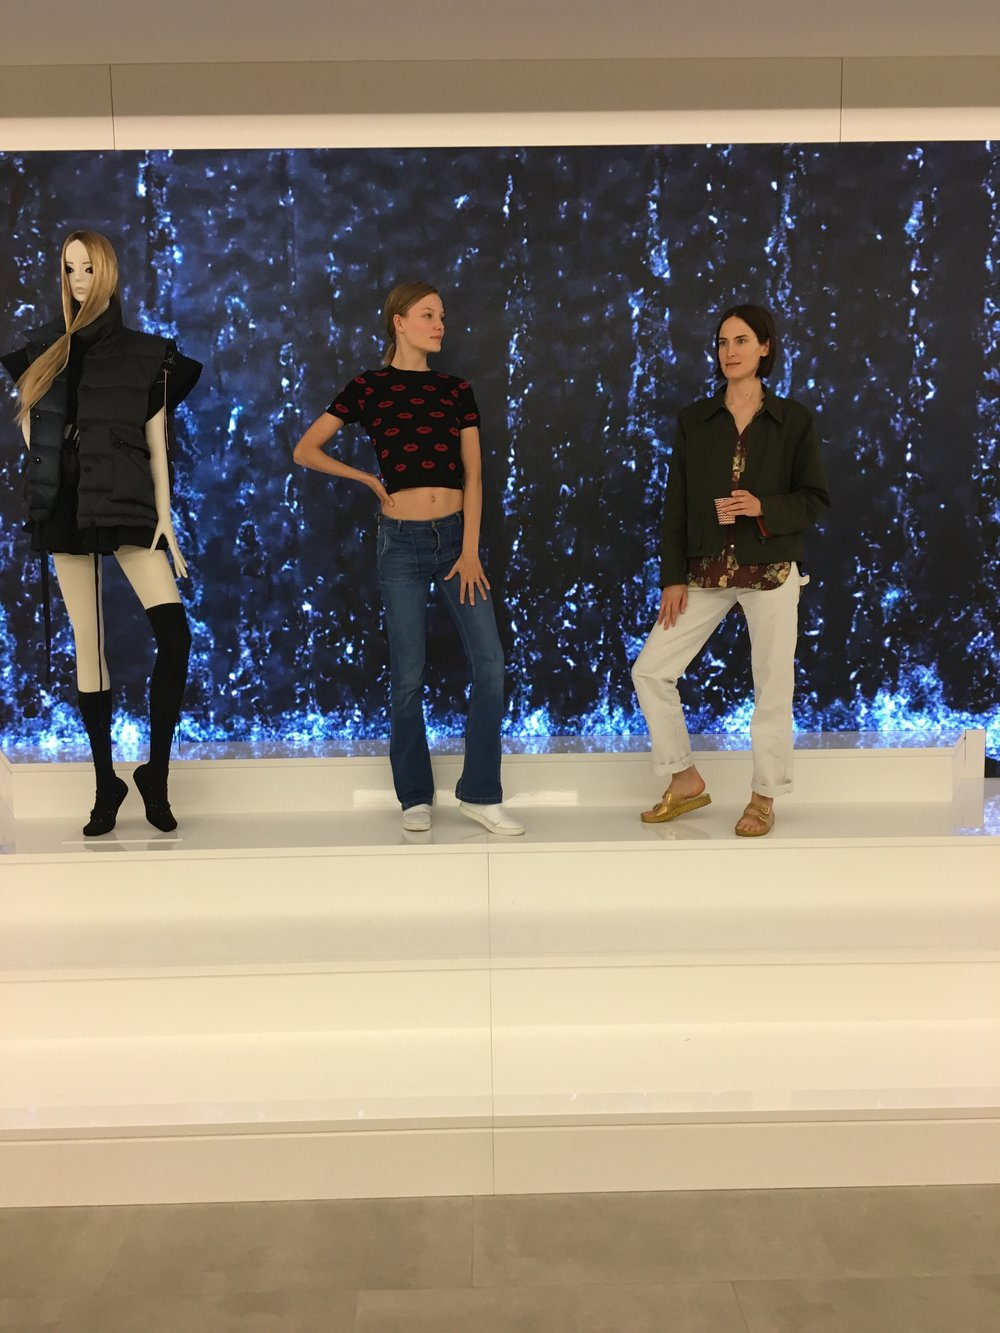 ZARA HAS MOCK STORES UNDER THEIR OFFICES, FOR PRACTICE AND LAYOUT BLUEPRINTS. HERE THE MODELS I WORKED ALONGSIDE THAT WEEK ARE STANDING IN THE MOCK STORE WINDOW